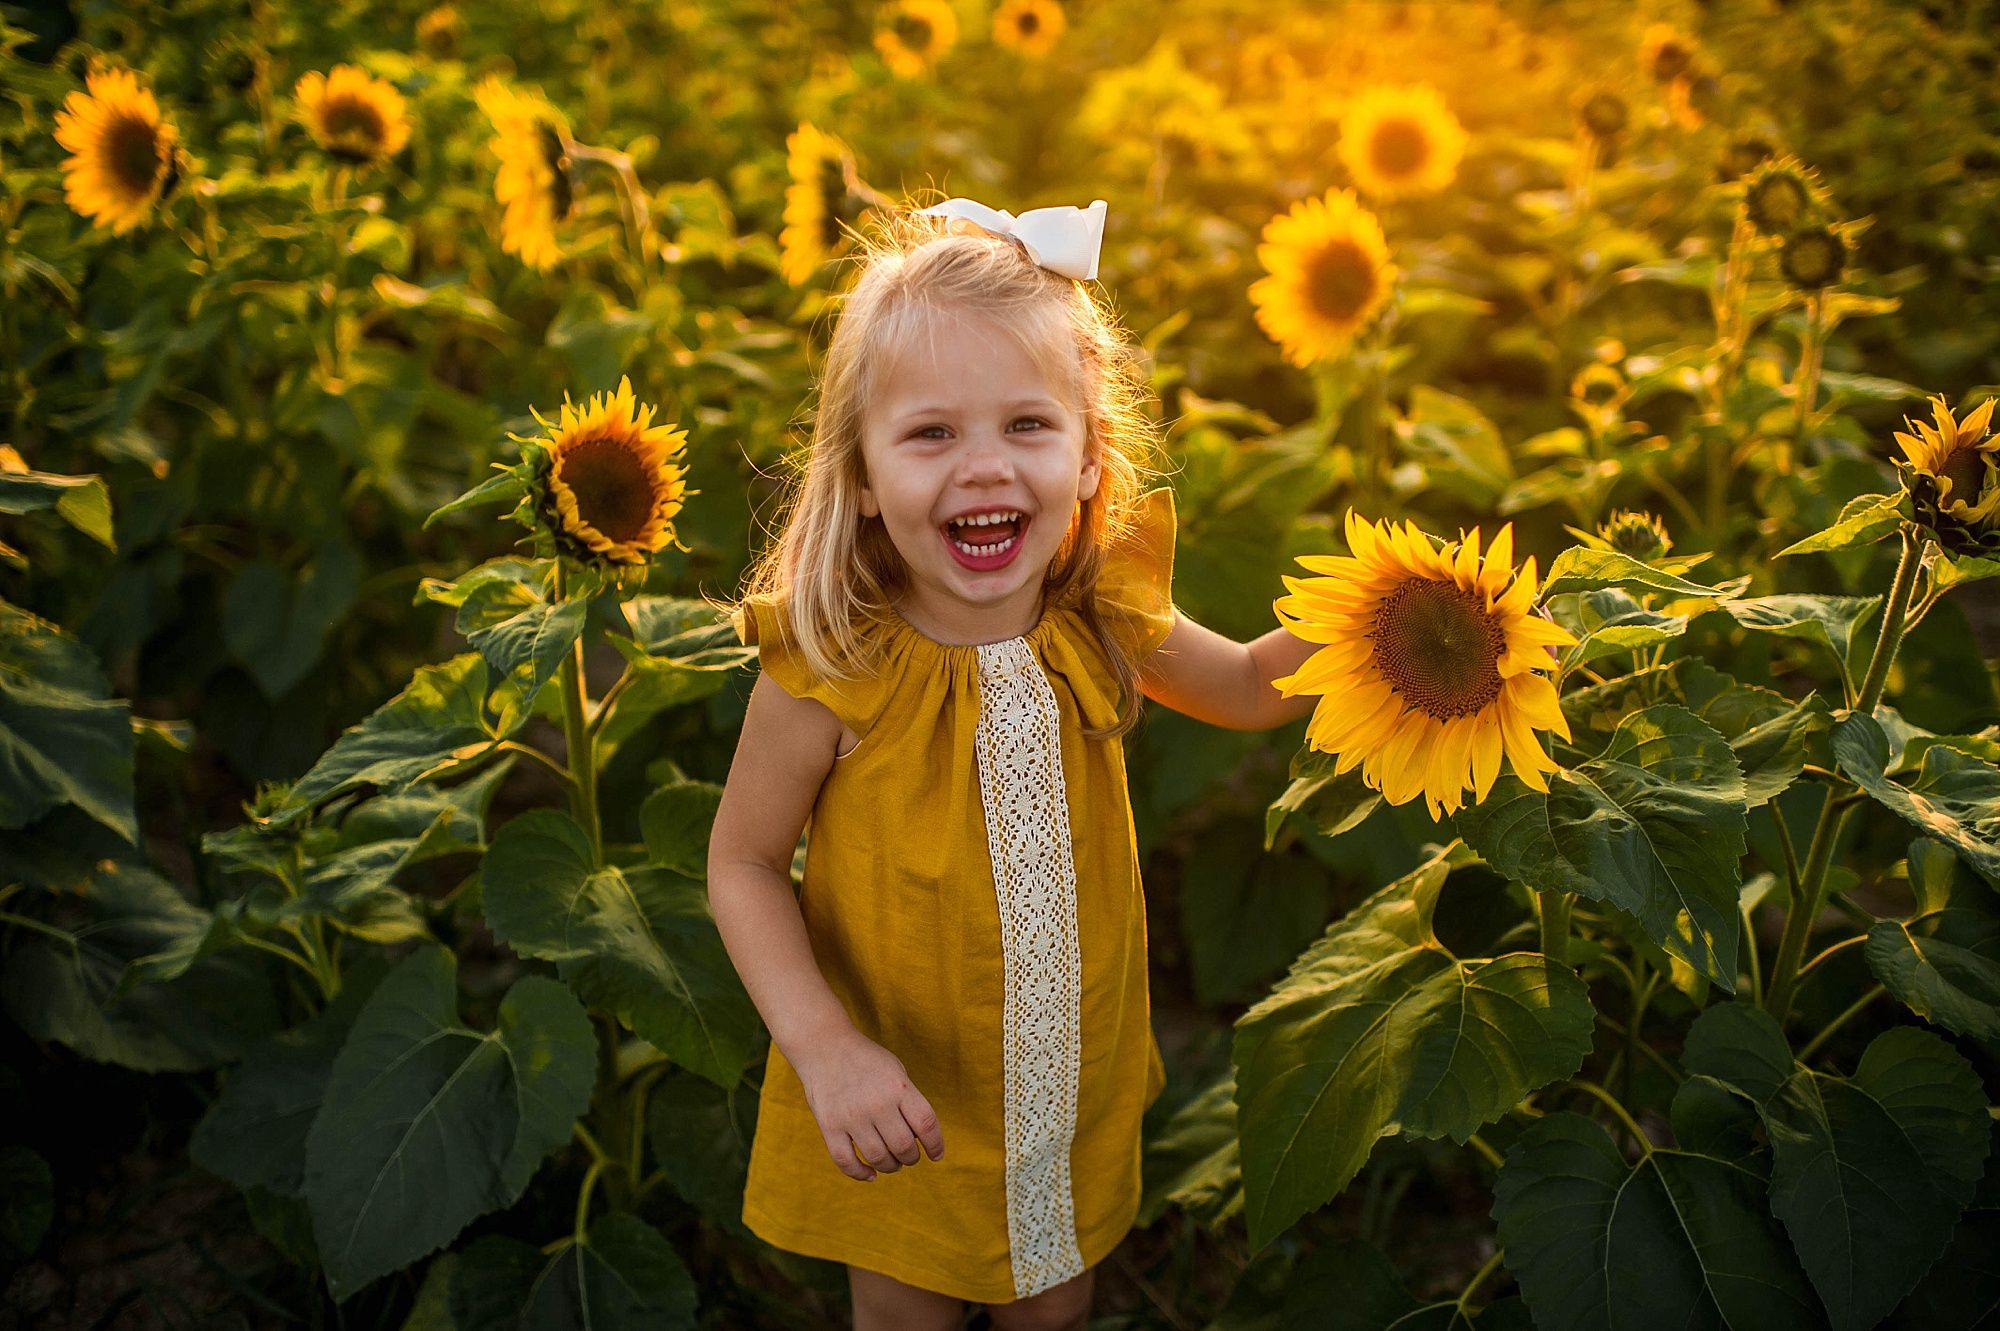 lauren-grayson-photography-cleveland-ohio-photographer-sunflower-fields-sunset-golden-hour-photo-shoot-mommy-and-me-family-child-photographer_0555.jpg